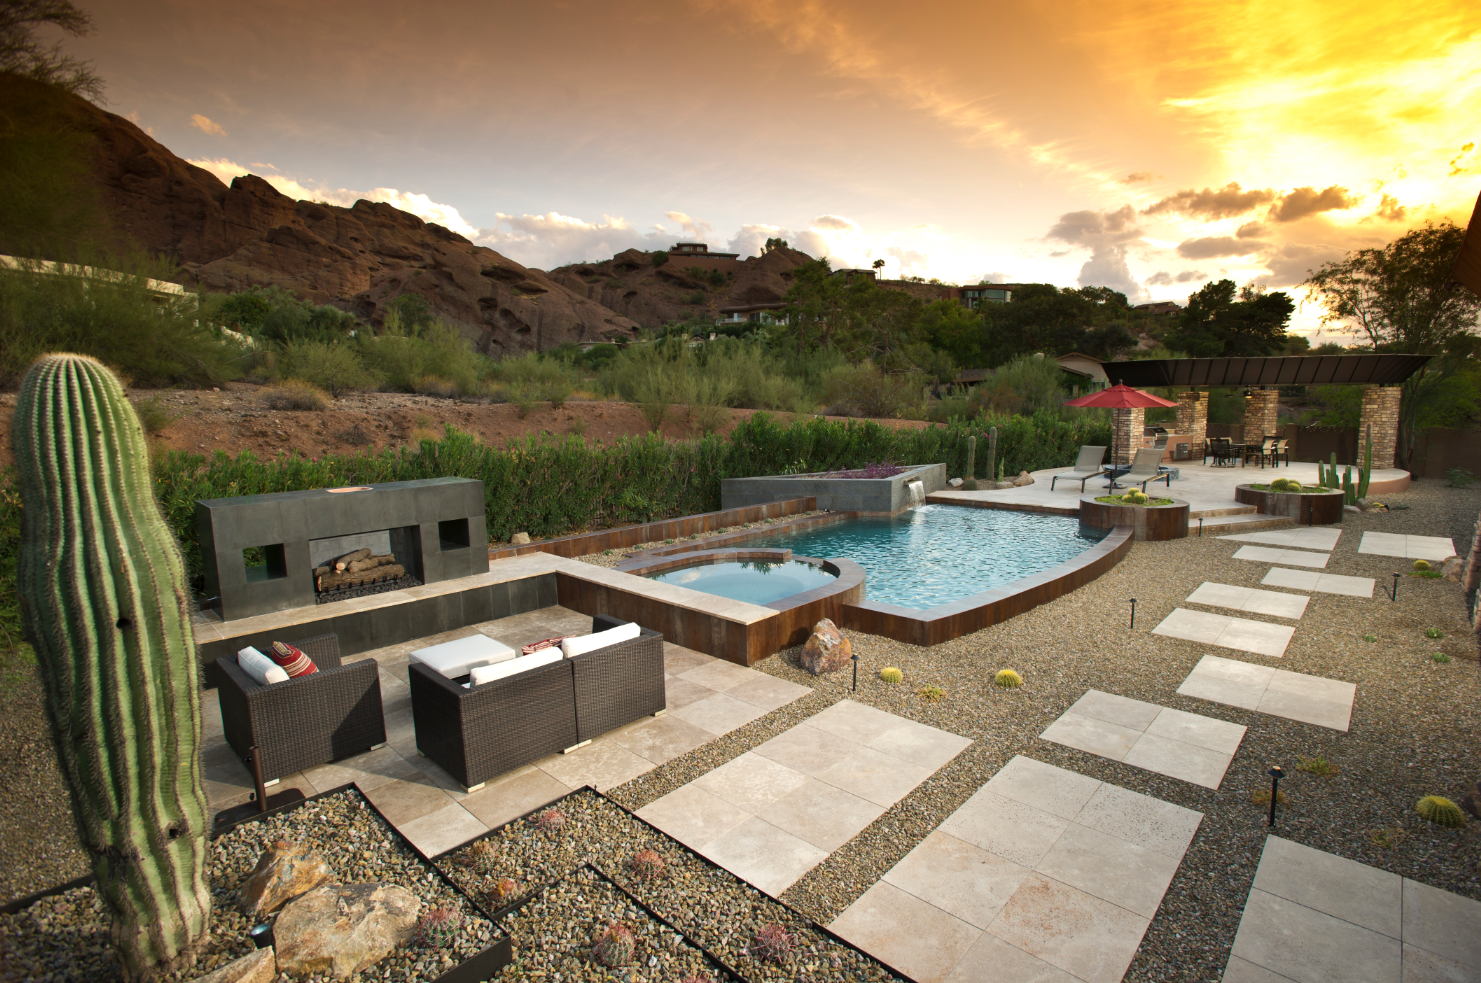 California Pools & Landscape | PebbleSheen: Blue Granite